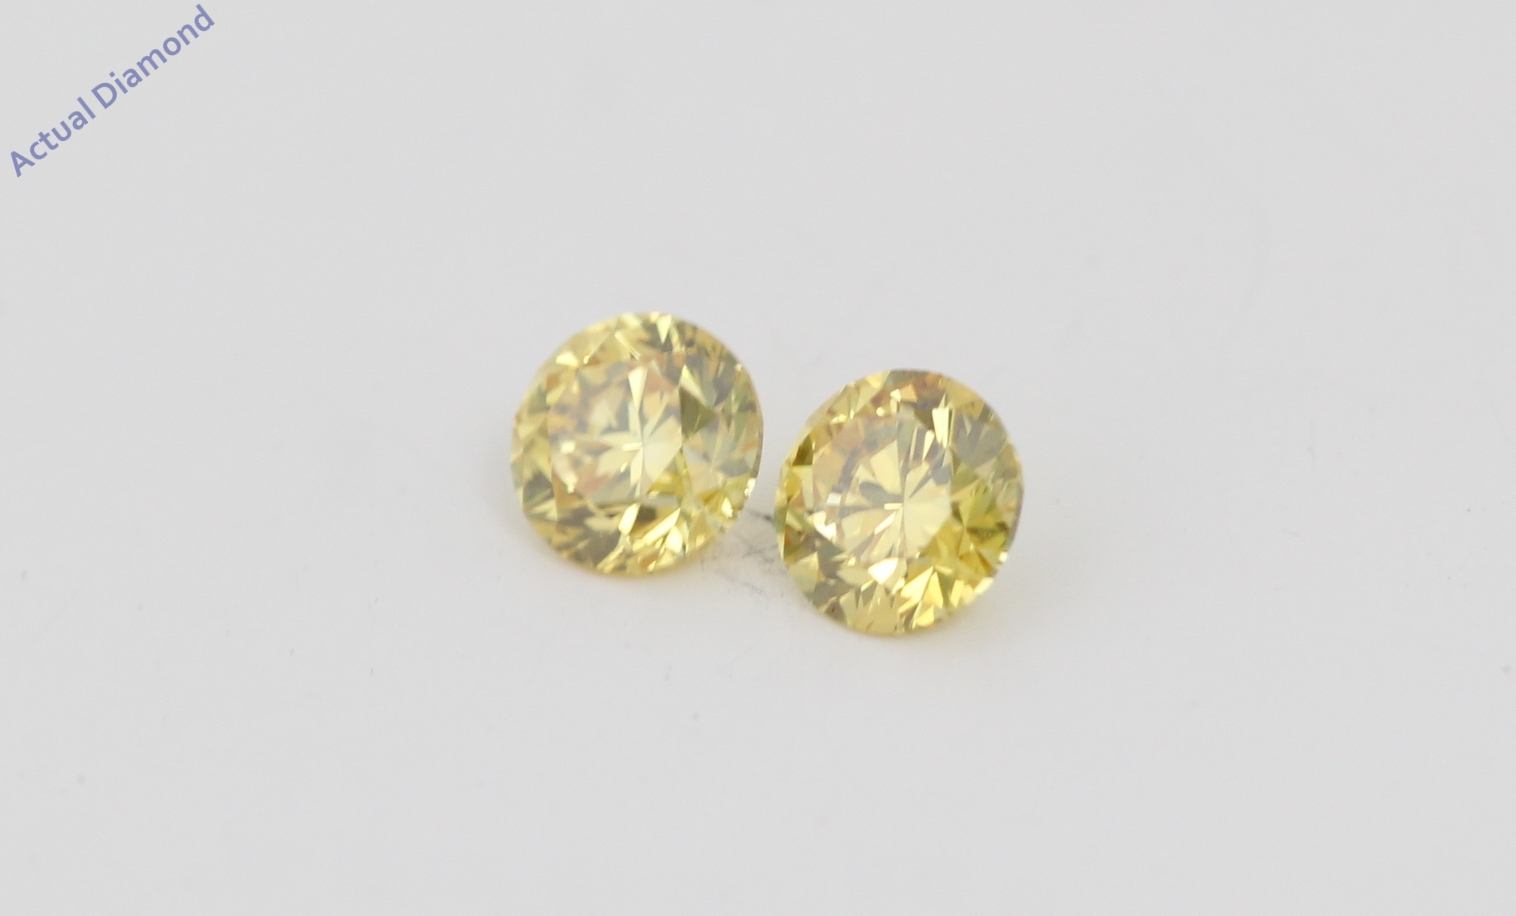 A Pair of Round Cut Loose Diamonds (0 41 Ct, Natural Fancy Vivid Yellow  Color, VVS2-VS1 Clarity) IGL Certified